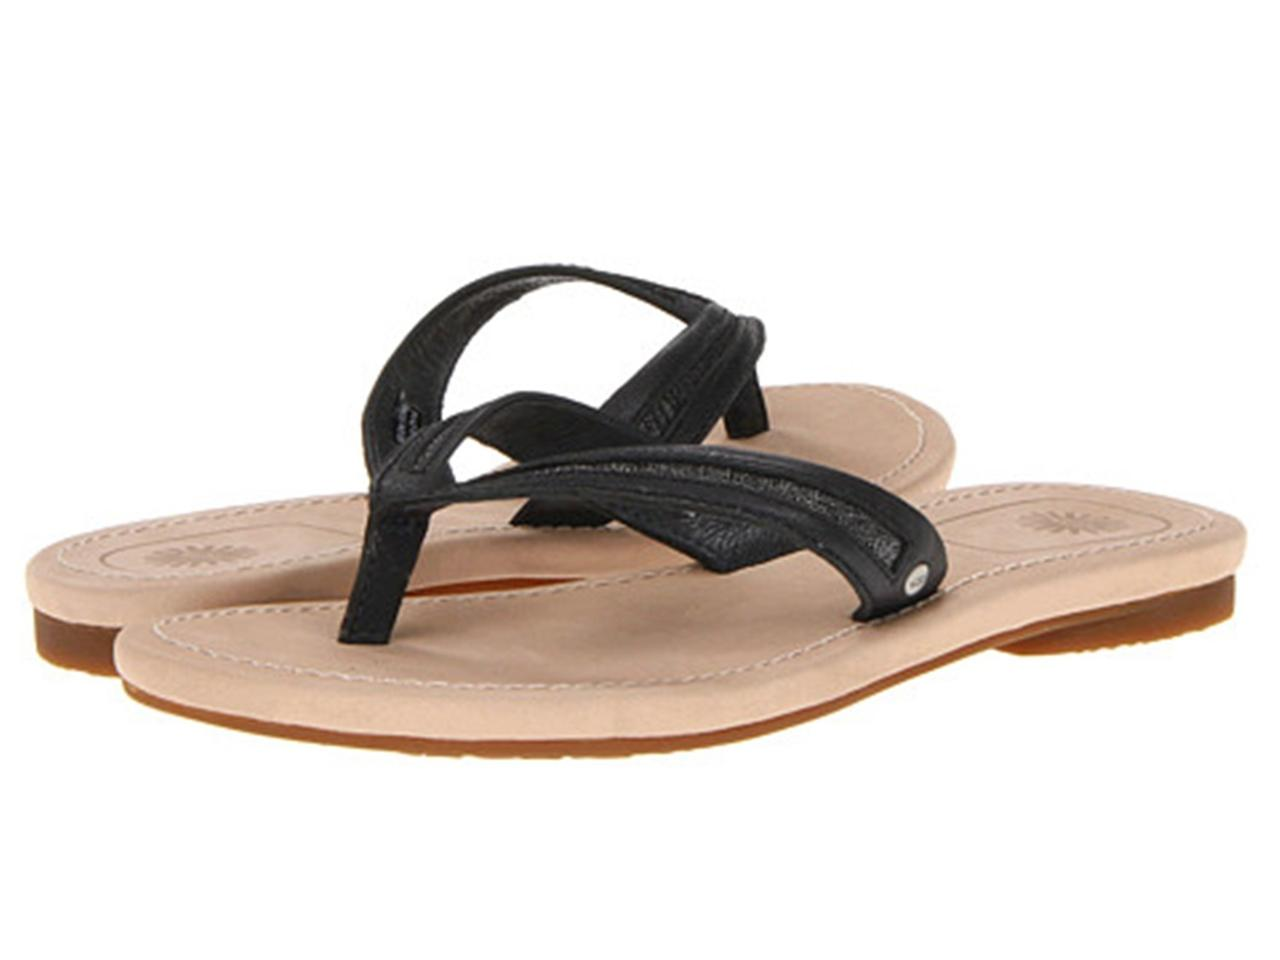 Shop for womens sandals & flip flops at Shop Parenting. We have amazing deals on womens sandals & flip flops from all around the web. For US conversions, please reference size chart. Made in Italy Color/material: black an d white fabric with black leather Adjustable ankle strap with buckle closure Lightly padded Clarks Clarks.